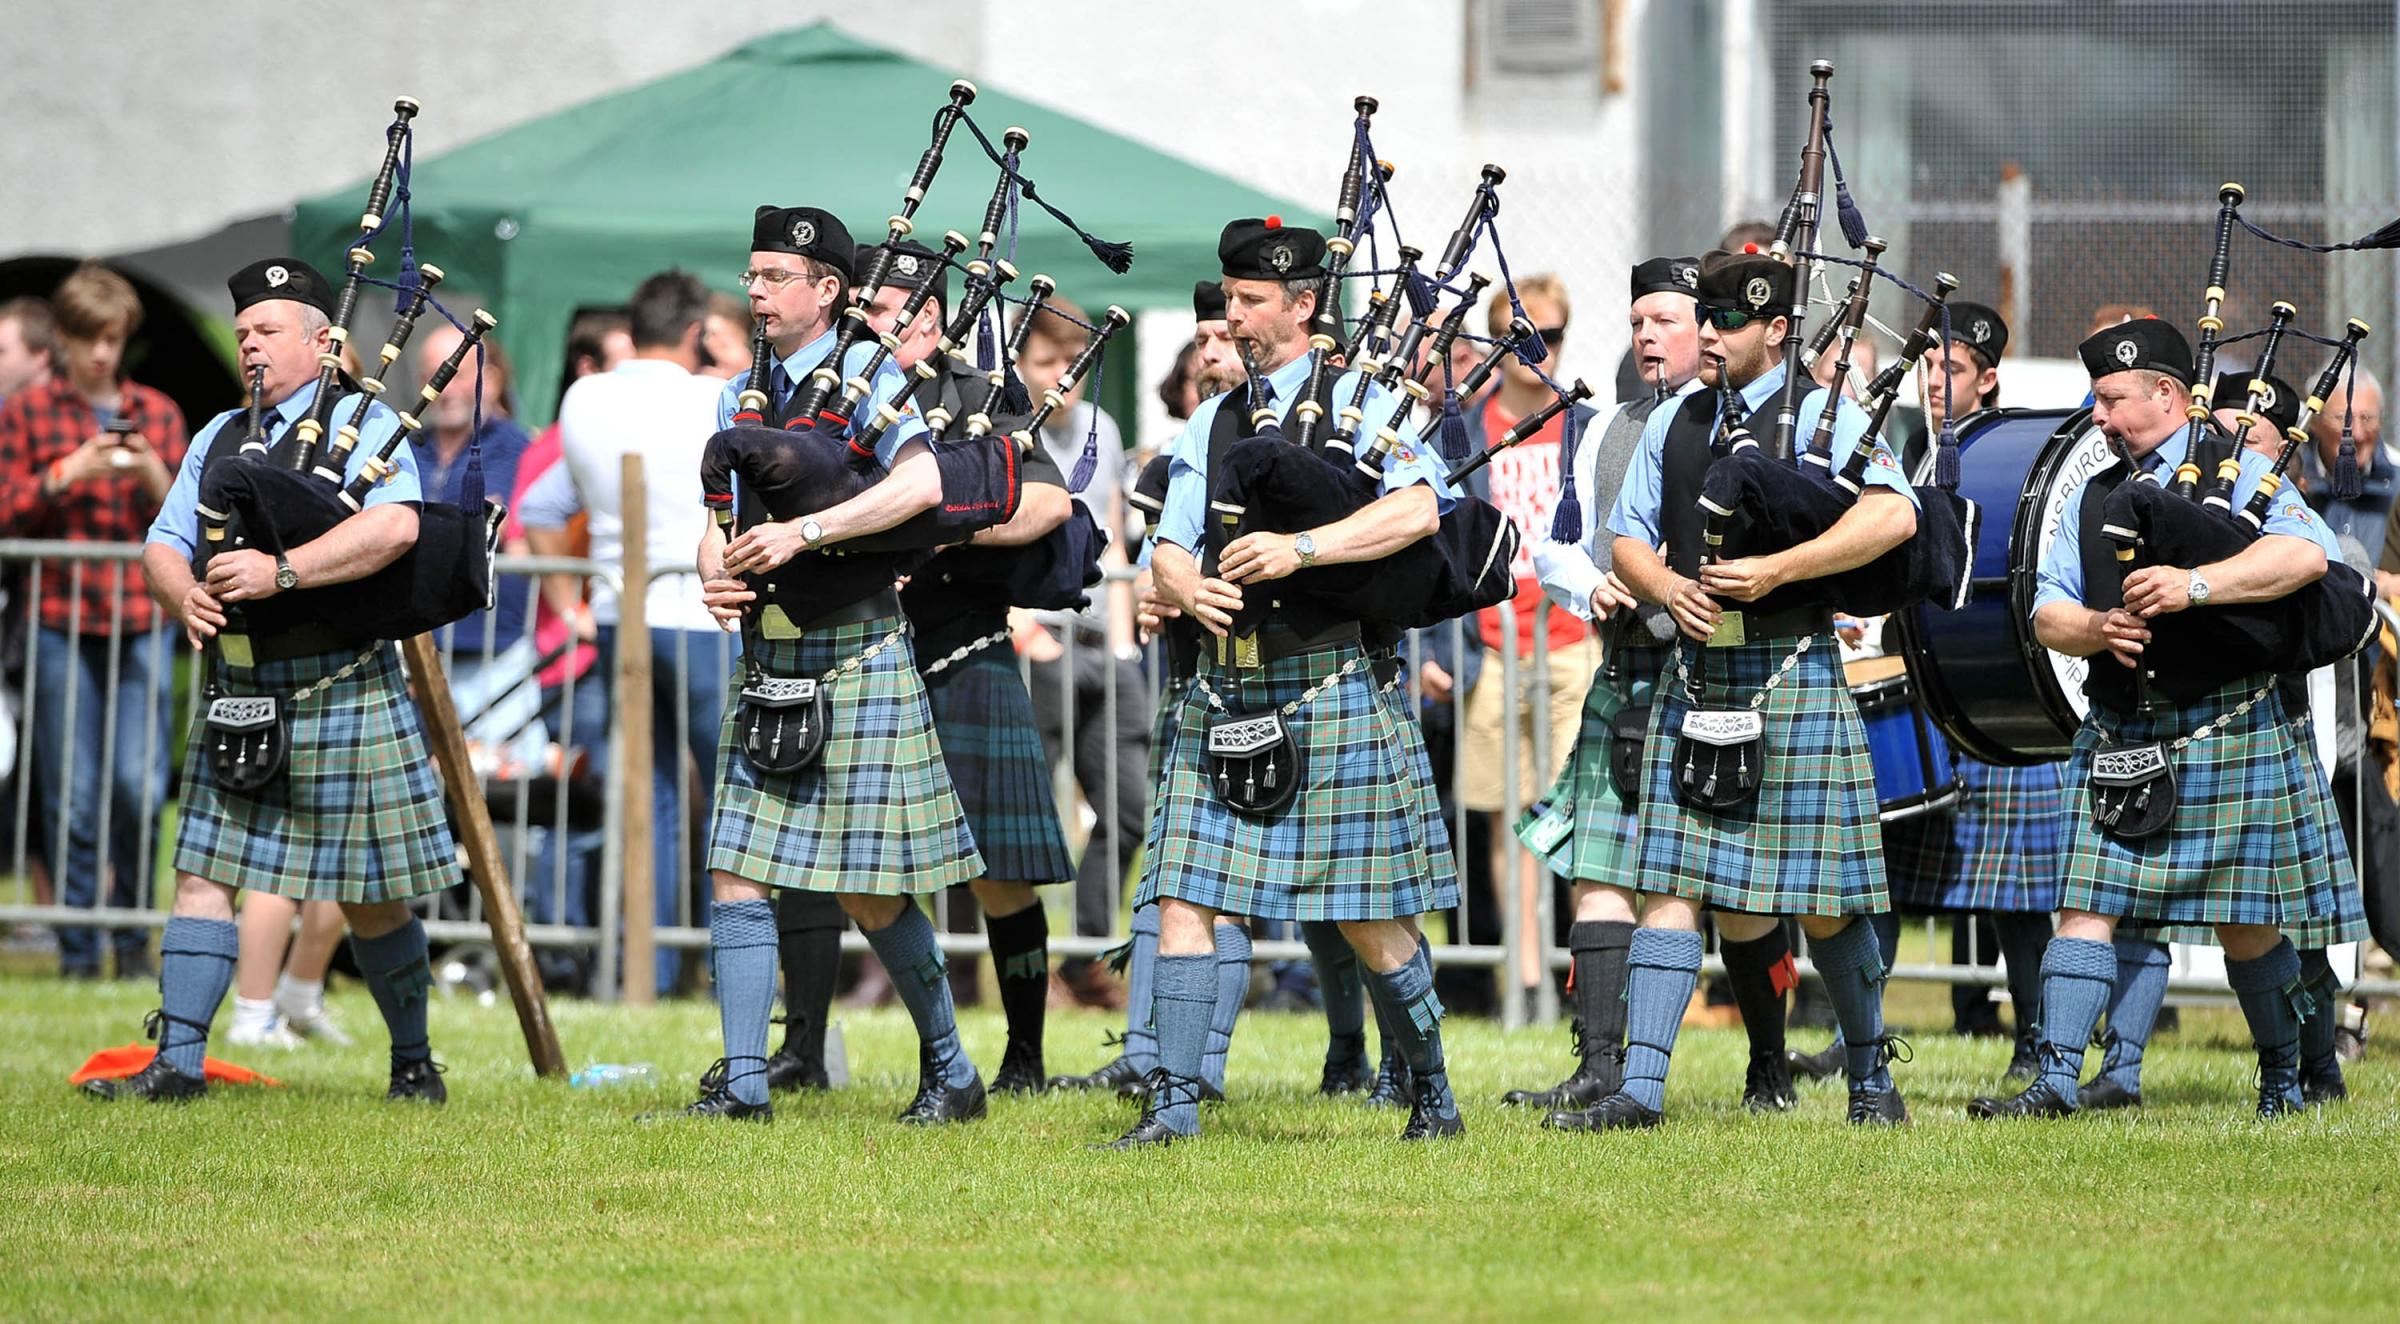 The Helensburgh Clan Colquhoun Pipe Band will play at the Gathering